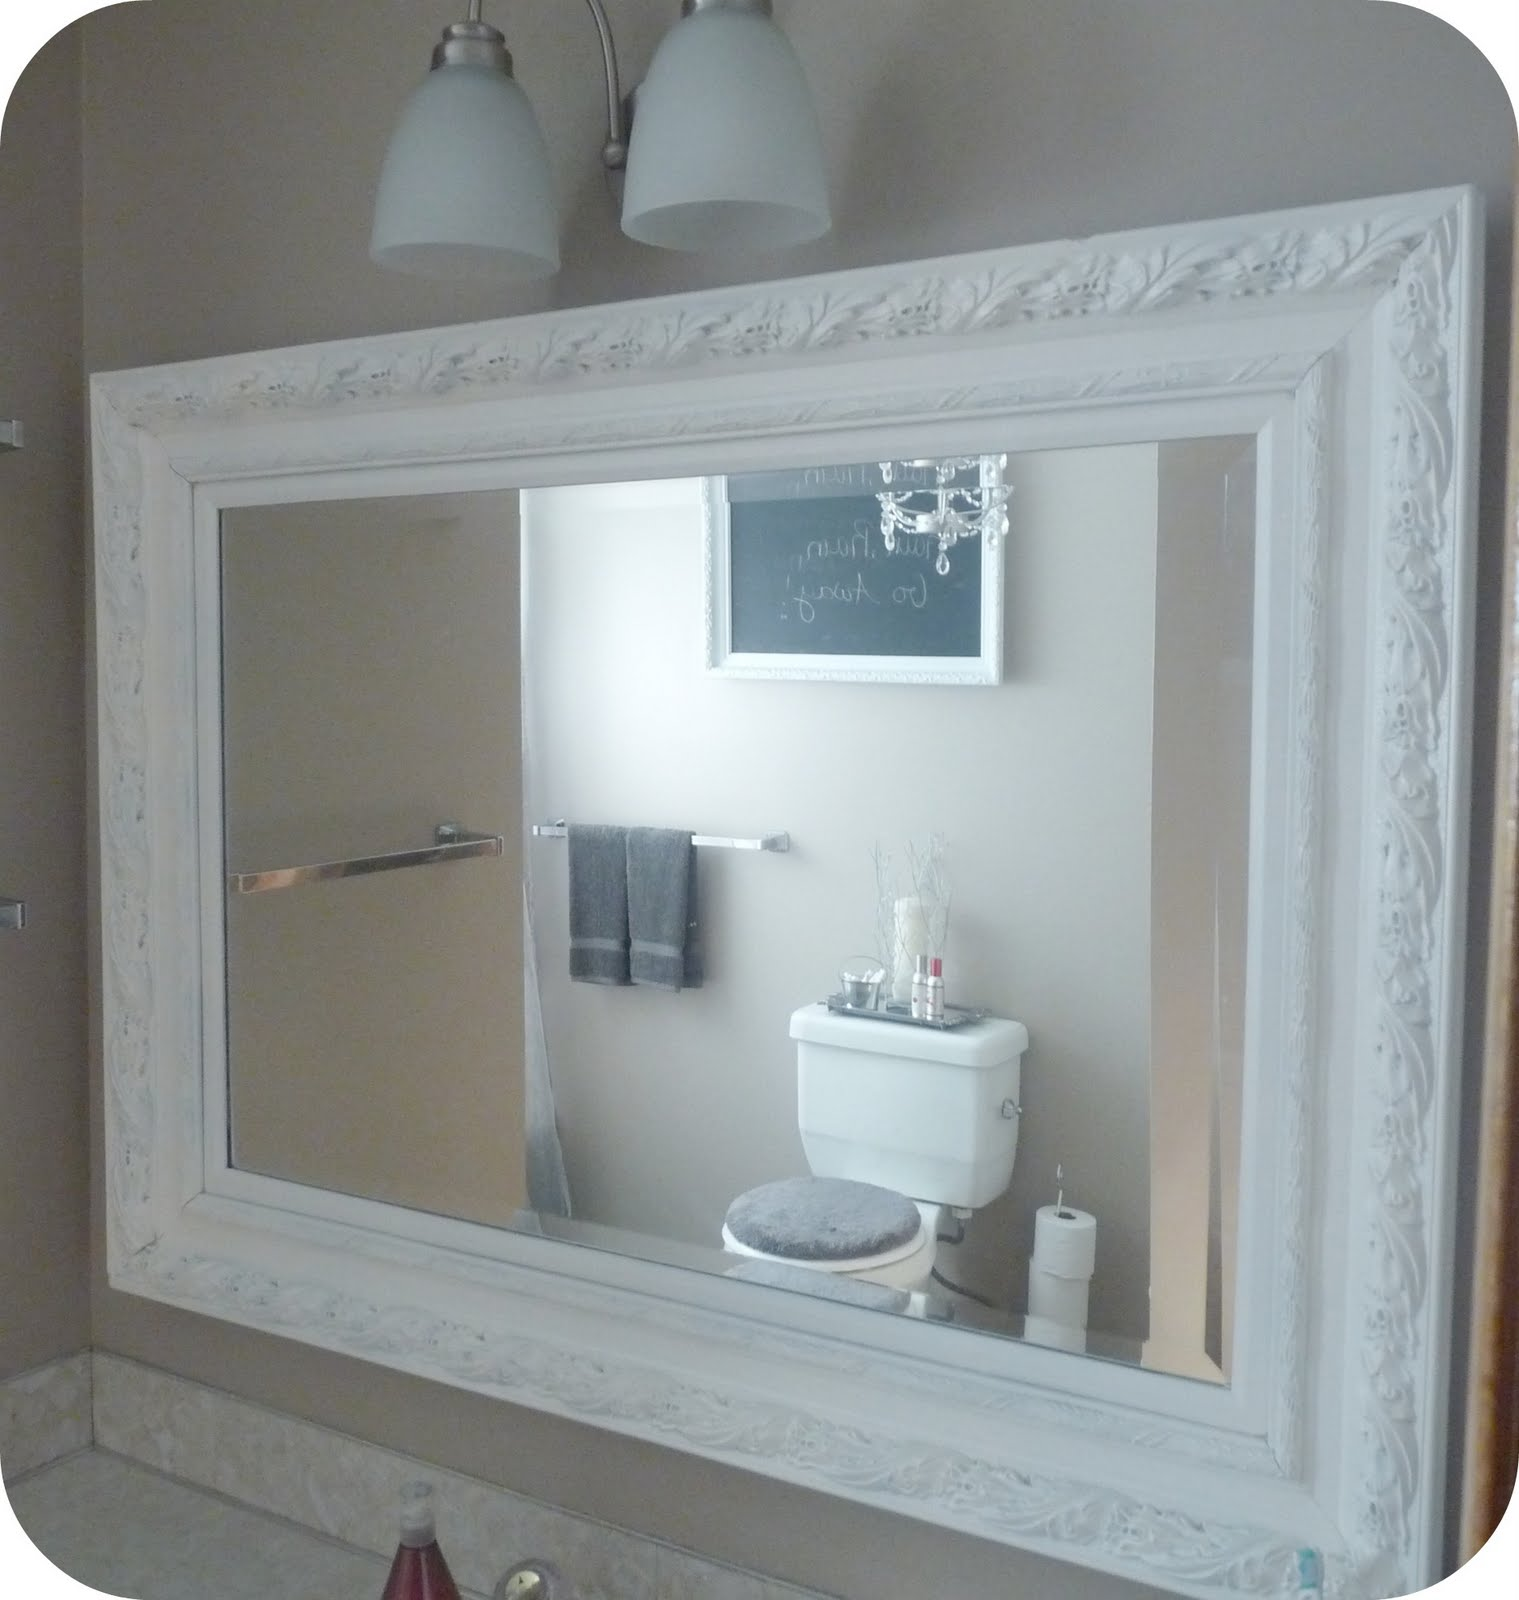 Beach Themed Bathroom Mirrors submited images